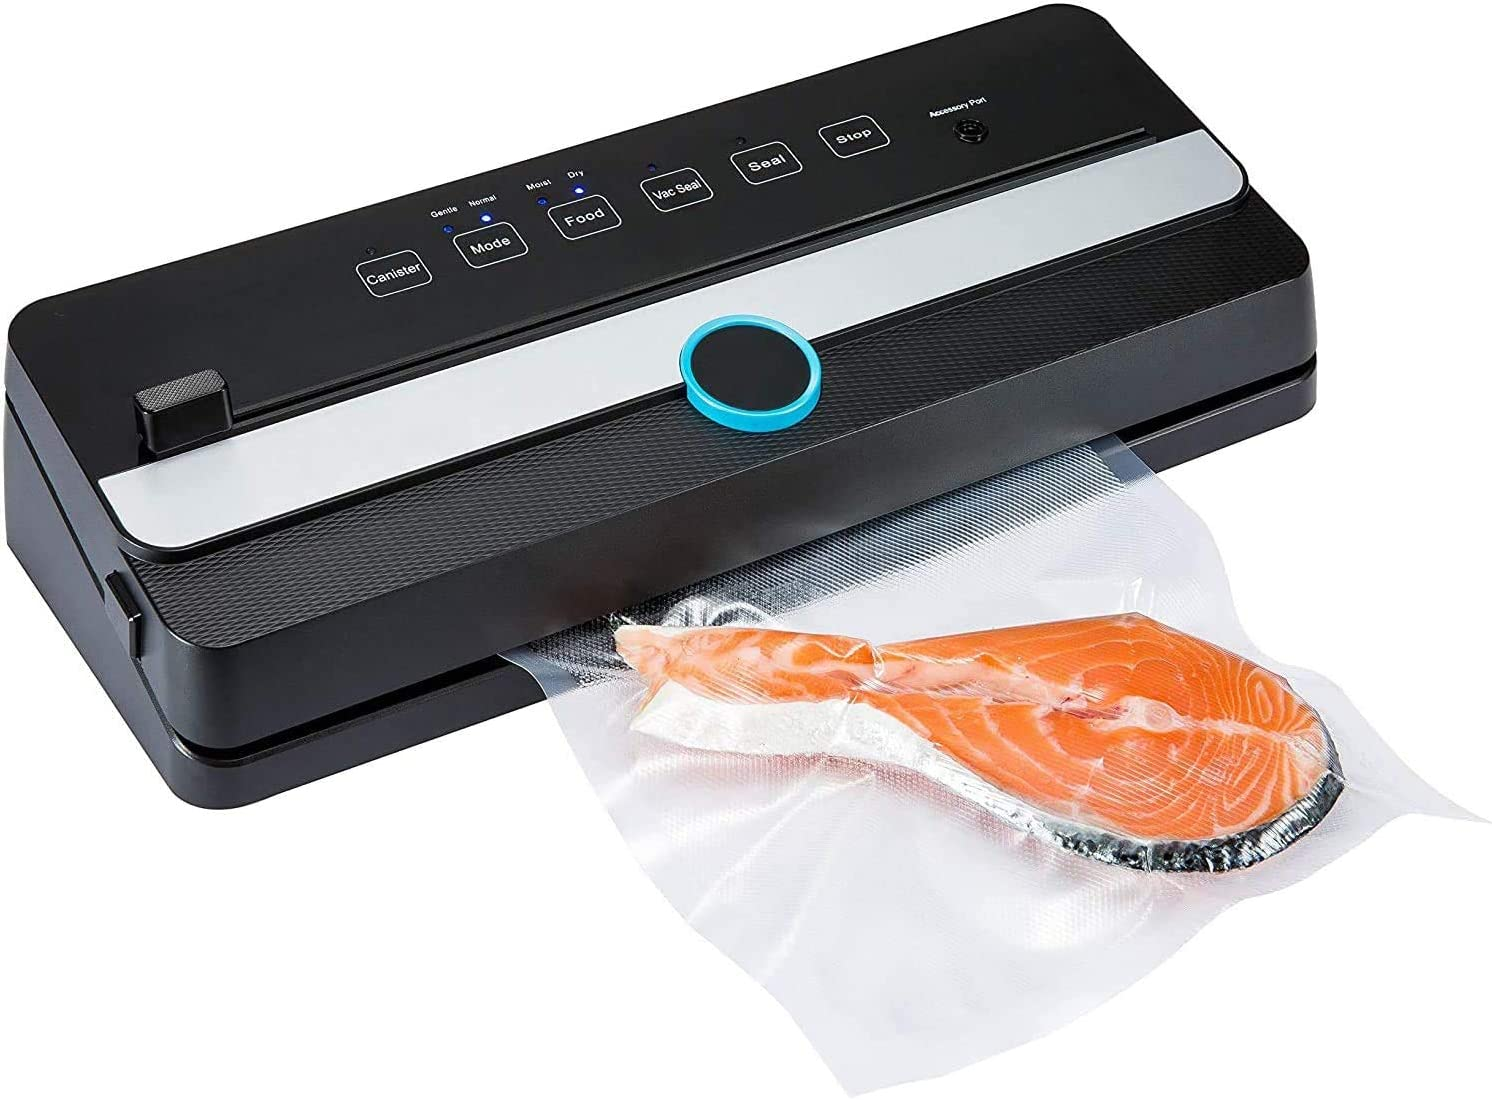 PBQWER Vacuum Sealer Machine | Automatic Vacuum Air Sealing System for Food Preservation W/Starter Kit | Compact Design | Lab Tested | Dry & Moist Food Modes | Led Indicator Lights